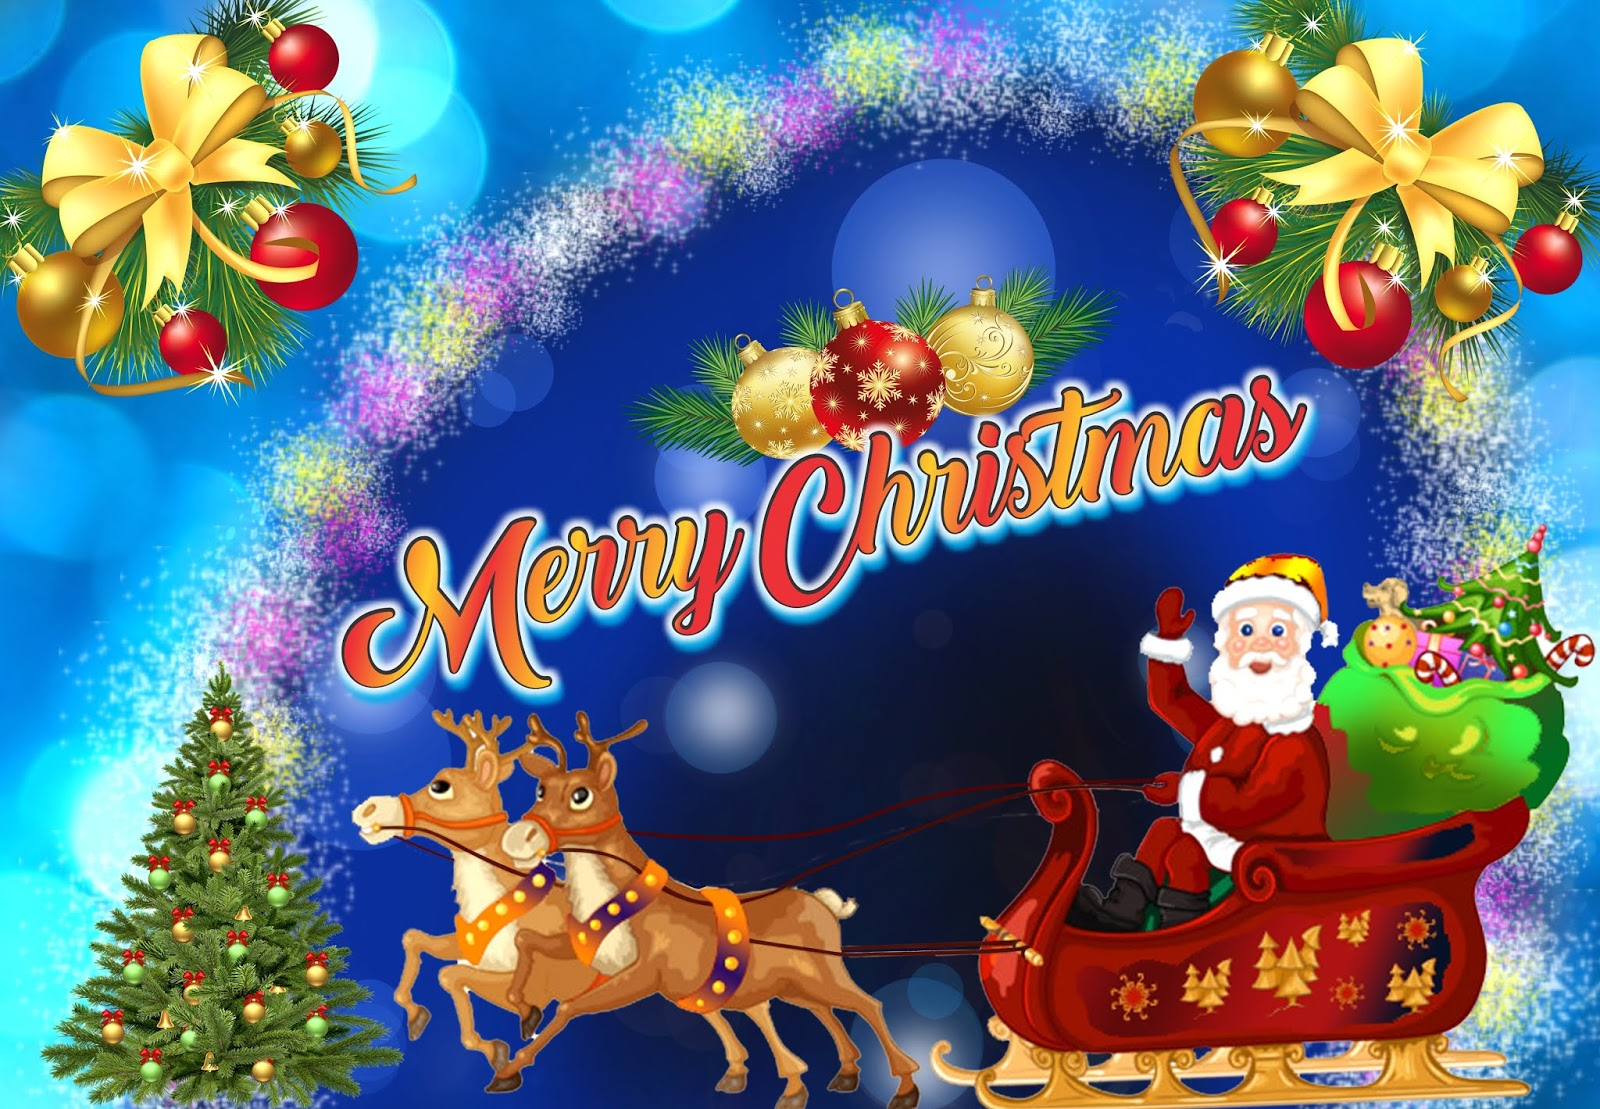 Merry Christmas Jesus Images Hd.All Type Of Graphic Design Pictures Hd Download Free